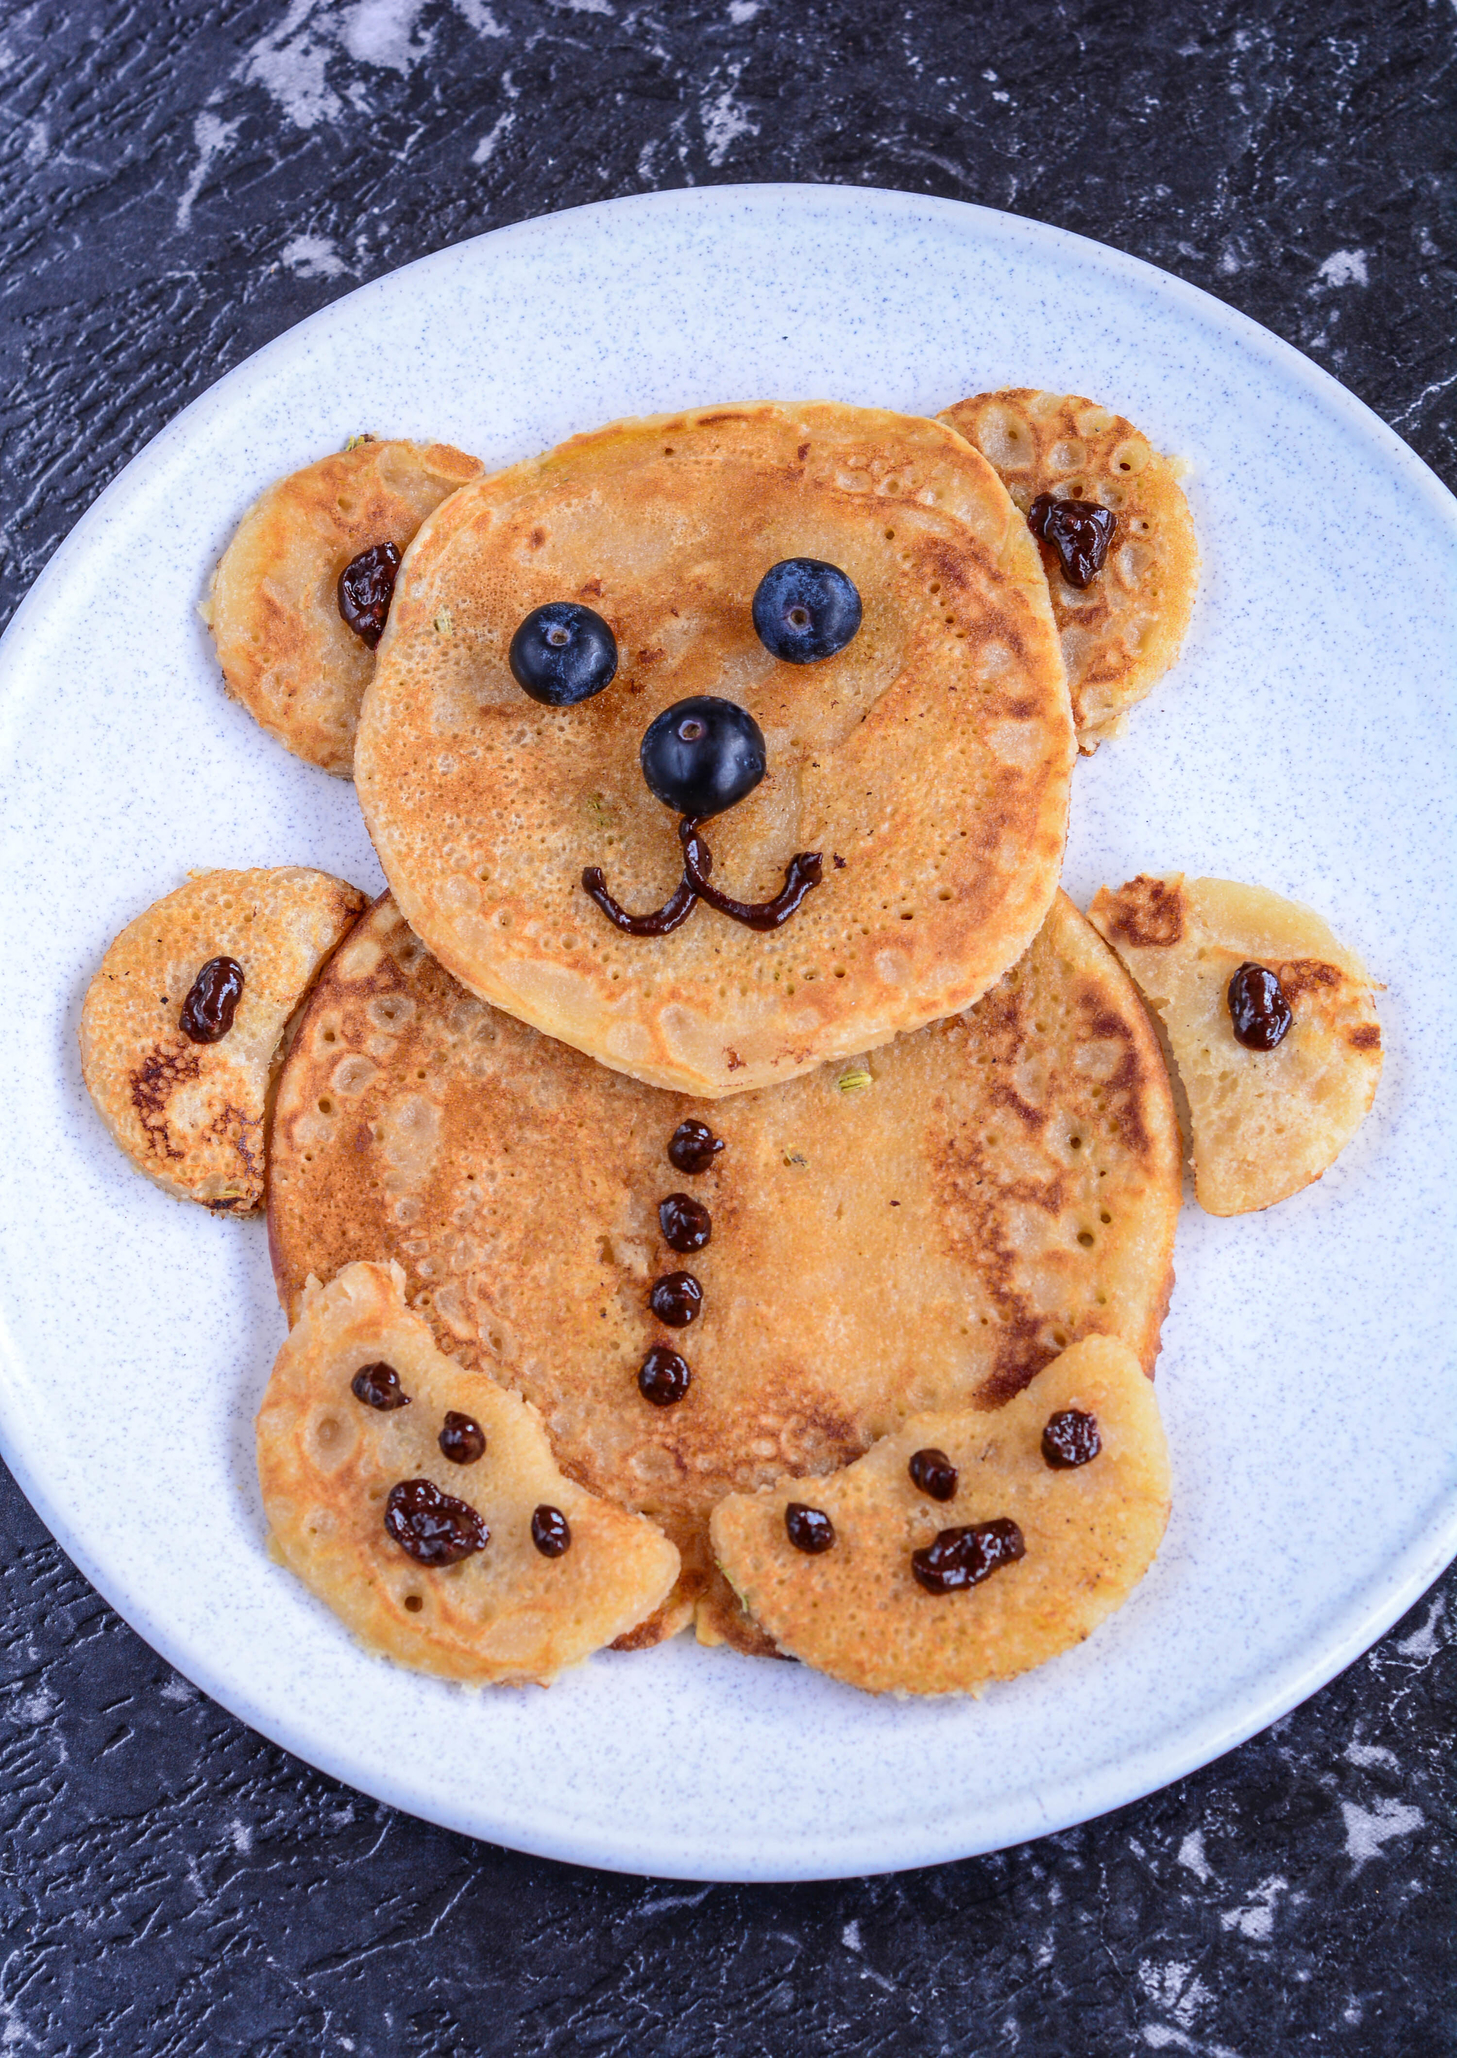 BIRTHDAY PANCAKES - TEDDY BEAR